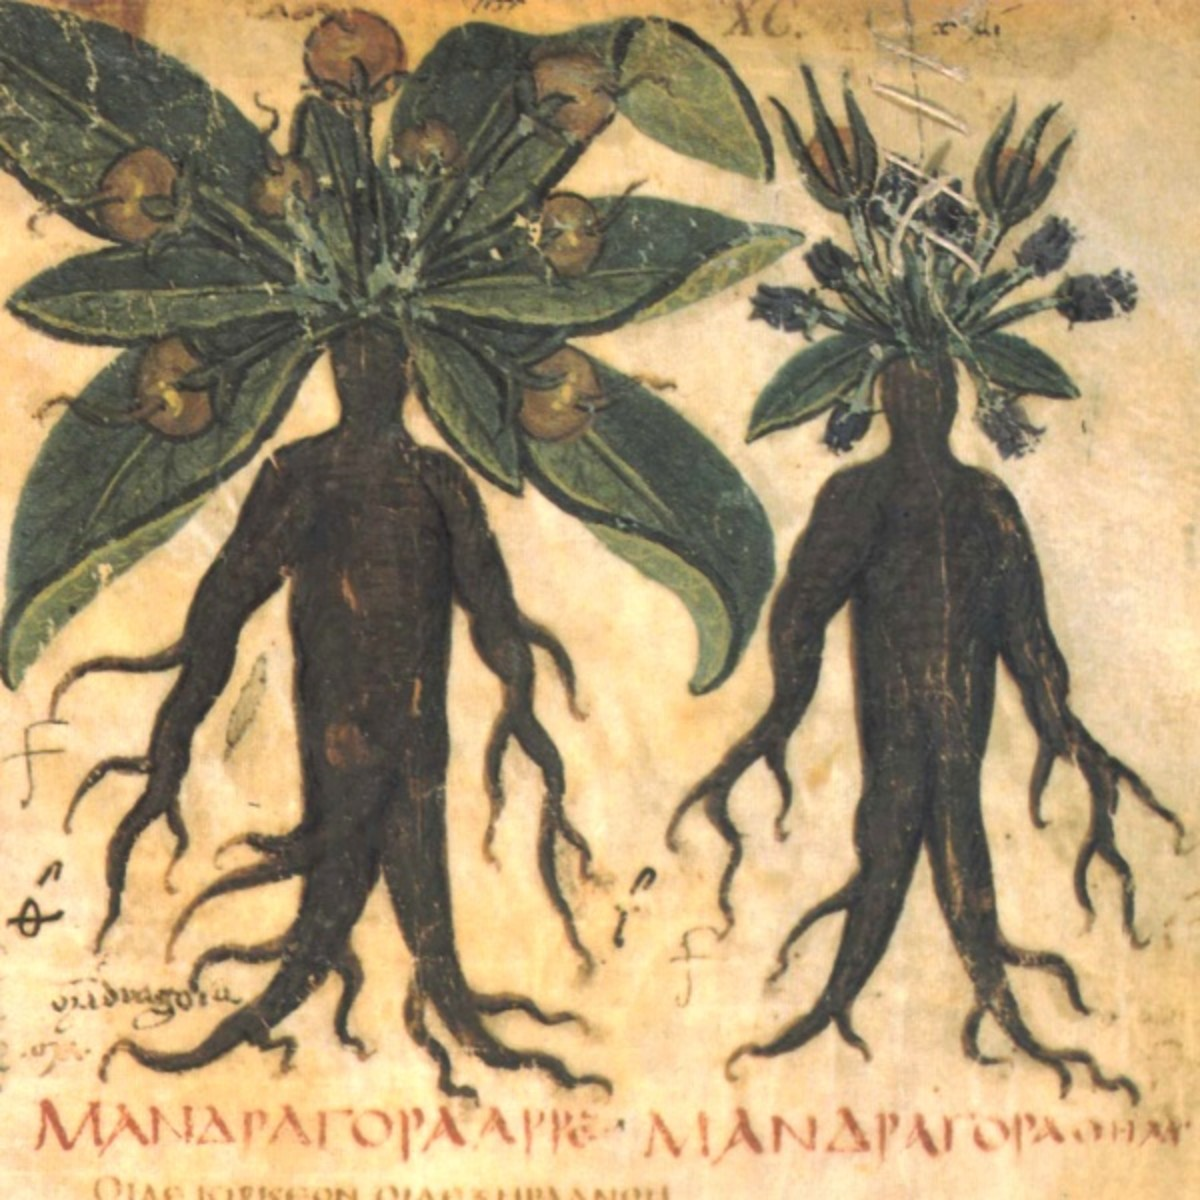 One of the many depictions of mandrake root in medieval European herbals.